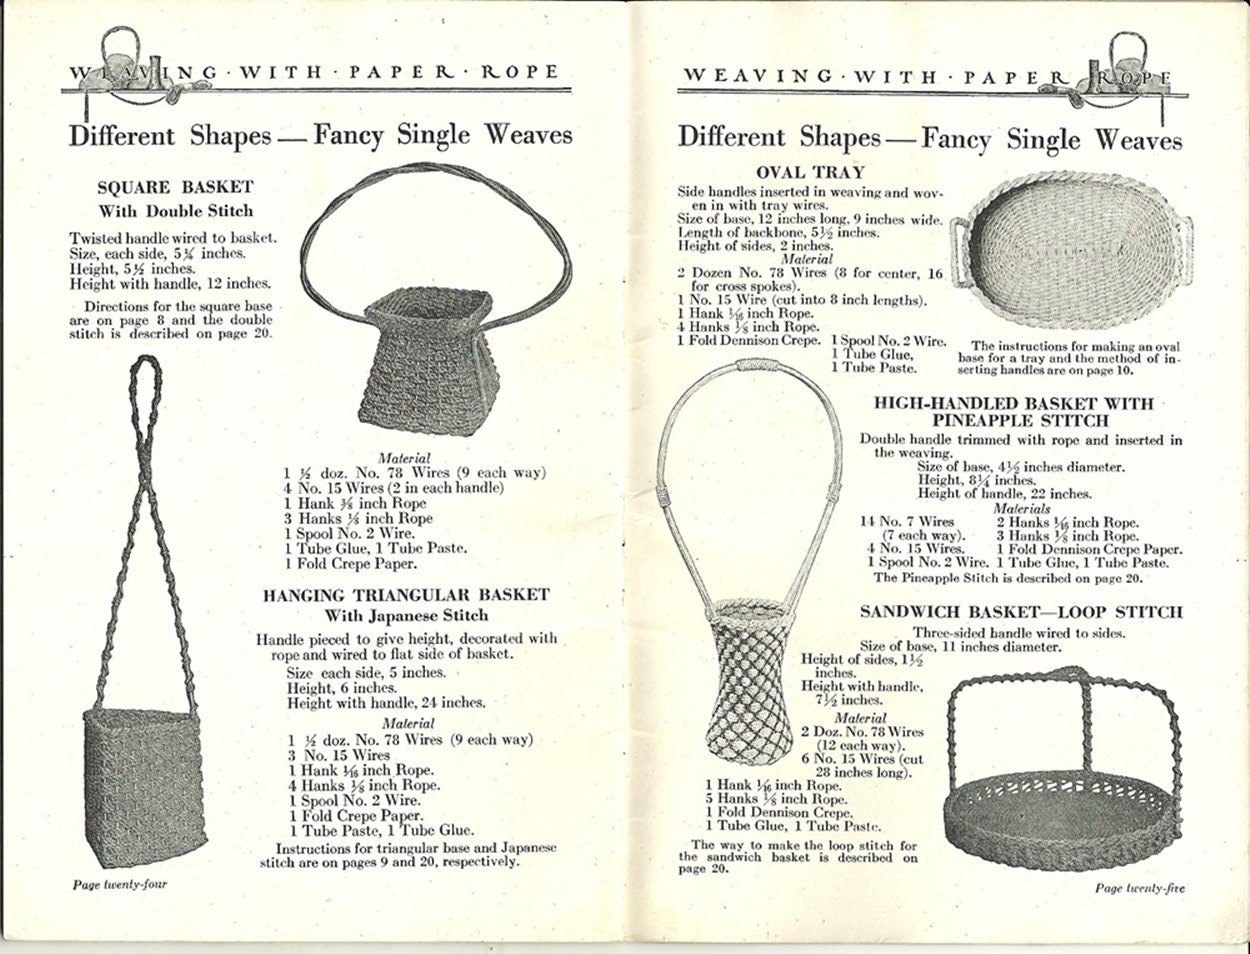 Weaving with Paper Rope - Vintage 1922 Crafting Instruction Booklet ...